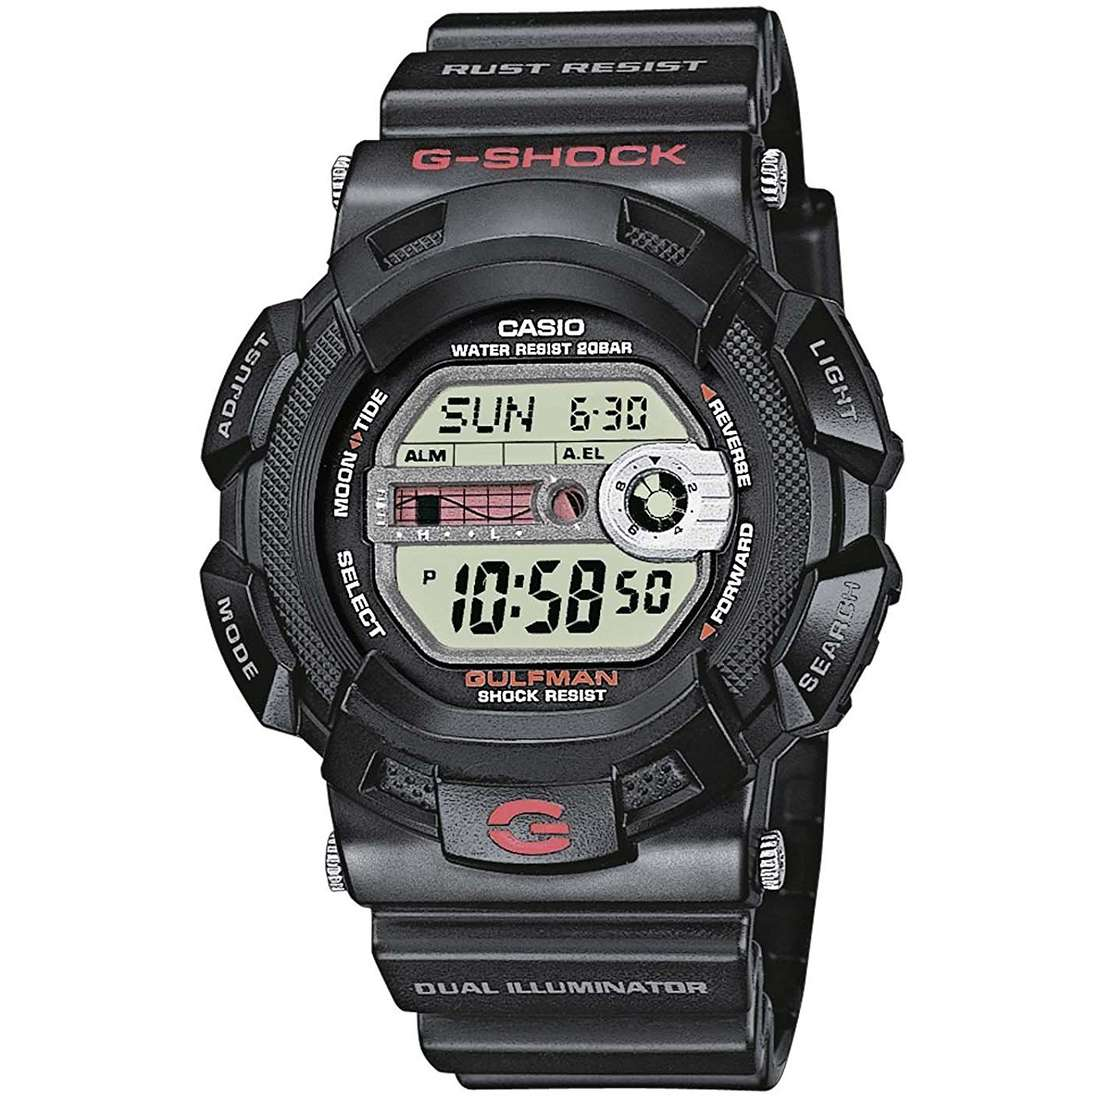 watch chronograph man Casio G-SHOCK G-9100-1ER